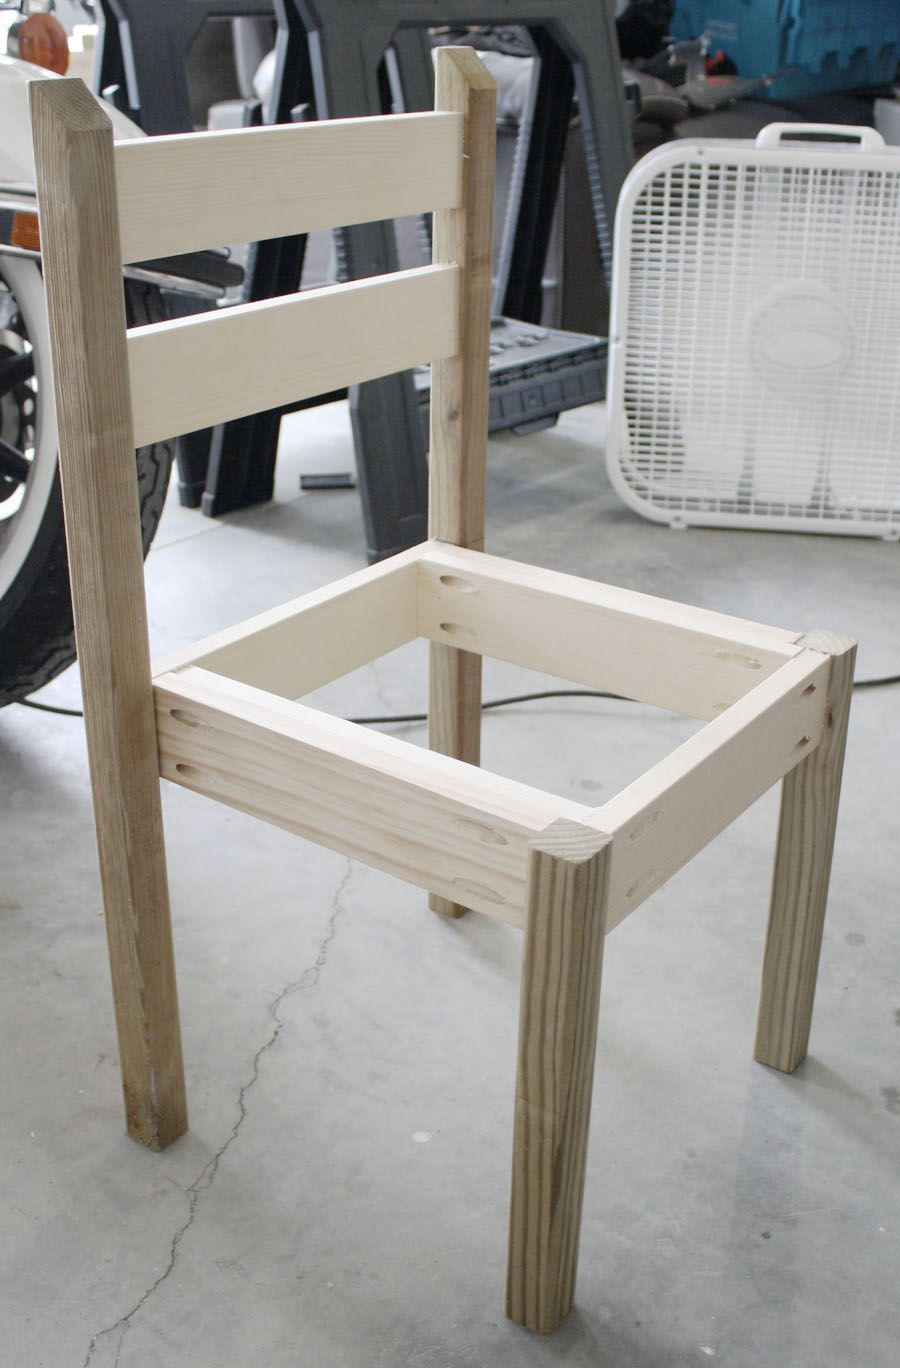 Diy kitchen island fit for a chef wood scraps scrap and for Chair design basics